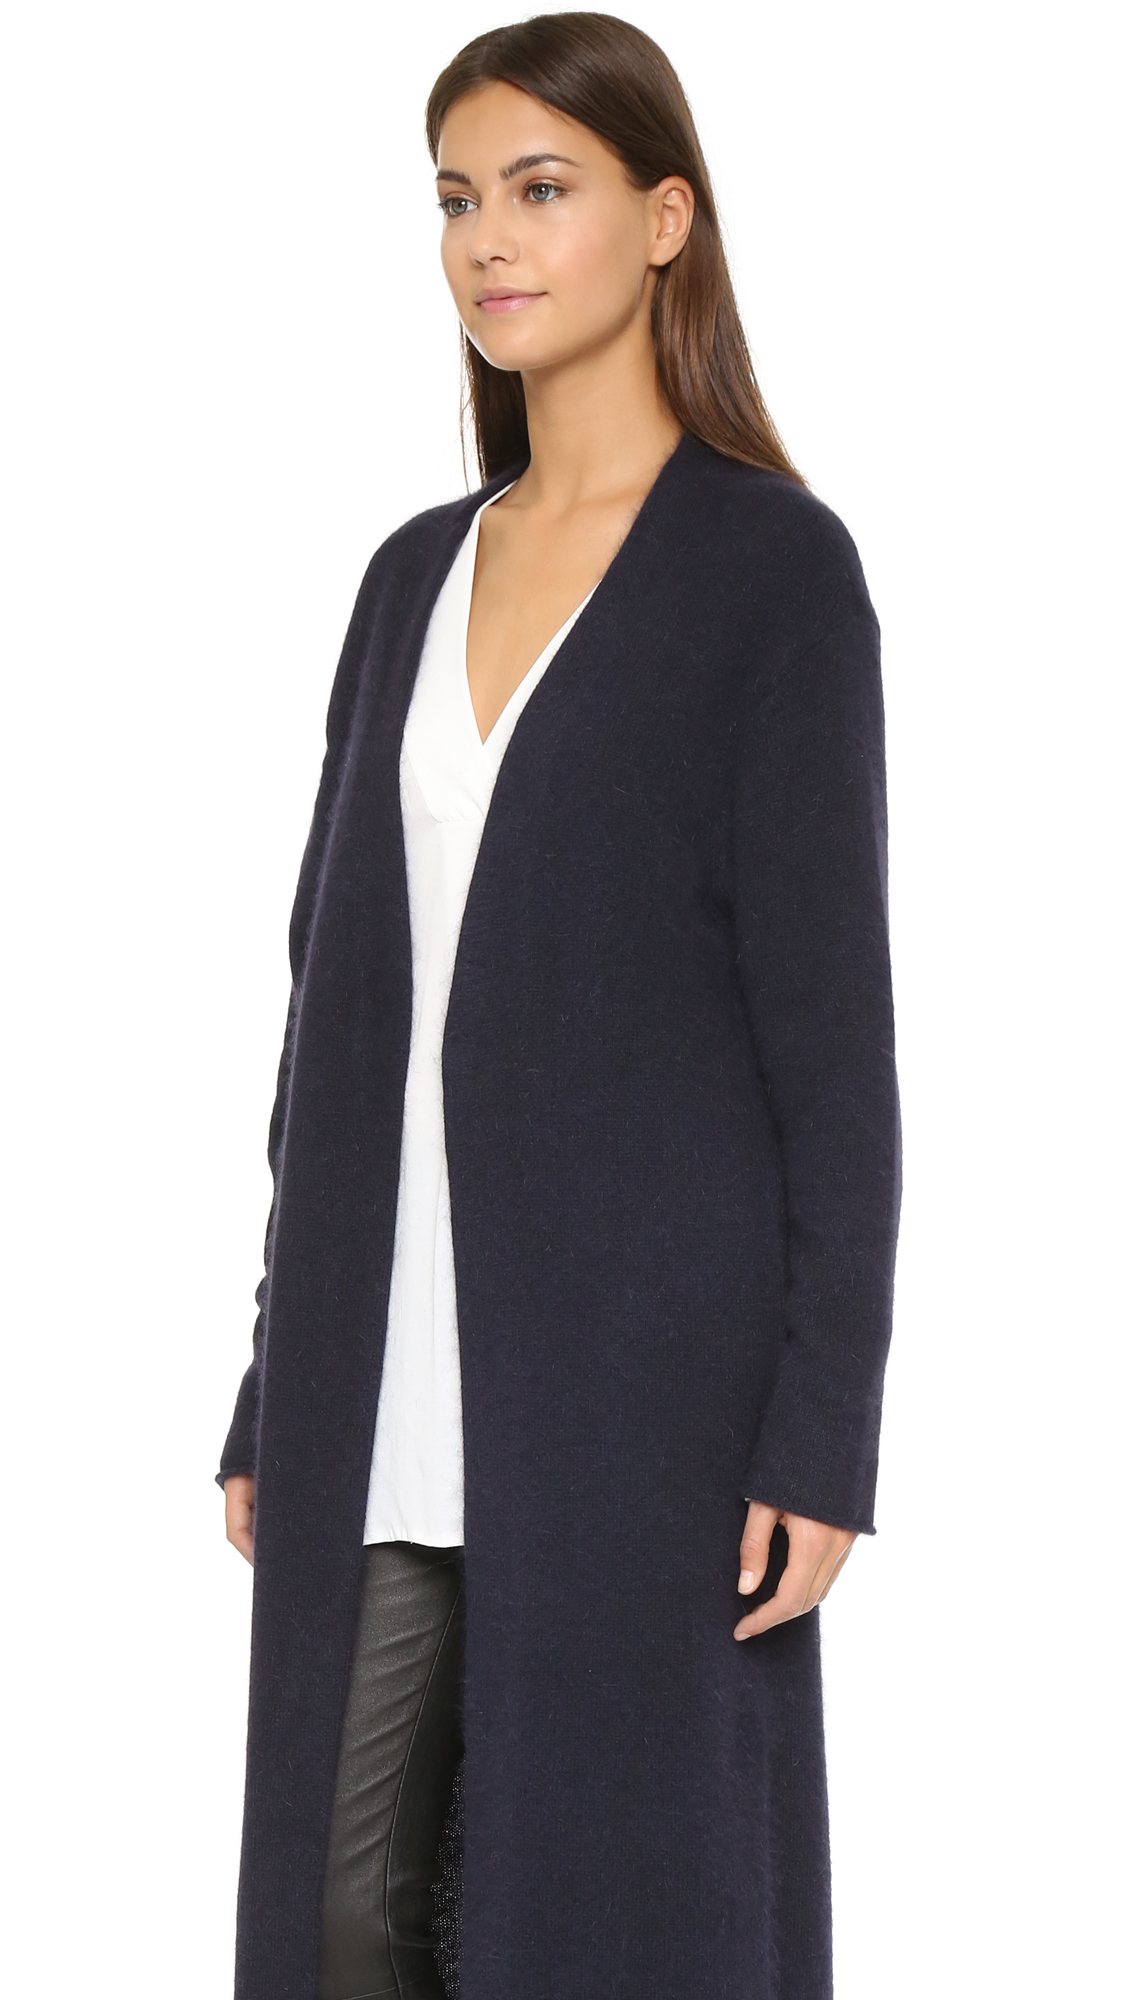 Nicholas Angora Long Cardigan - Navy in Blue | Lyst